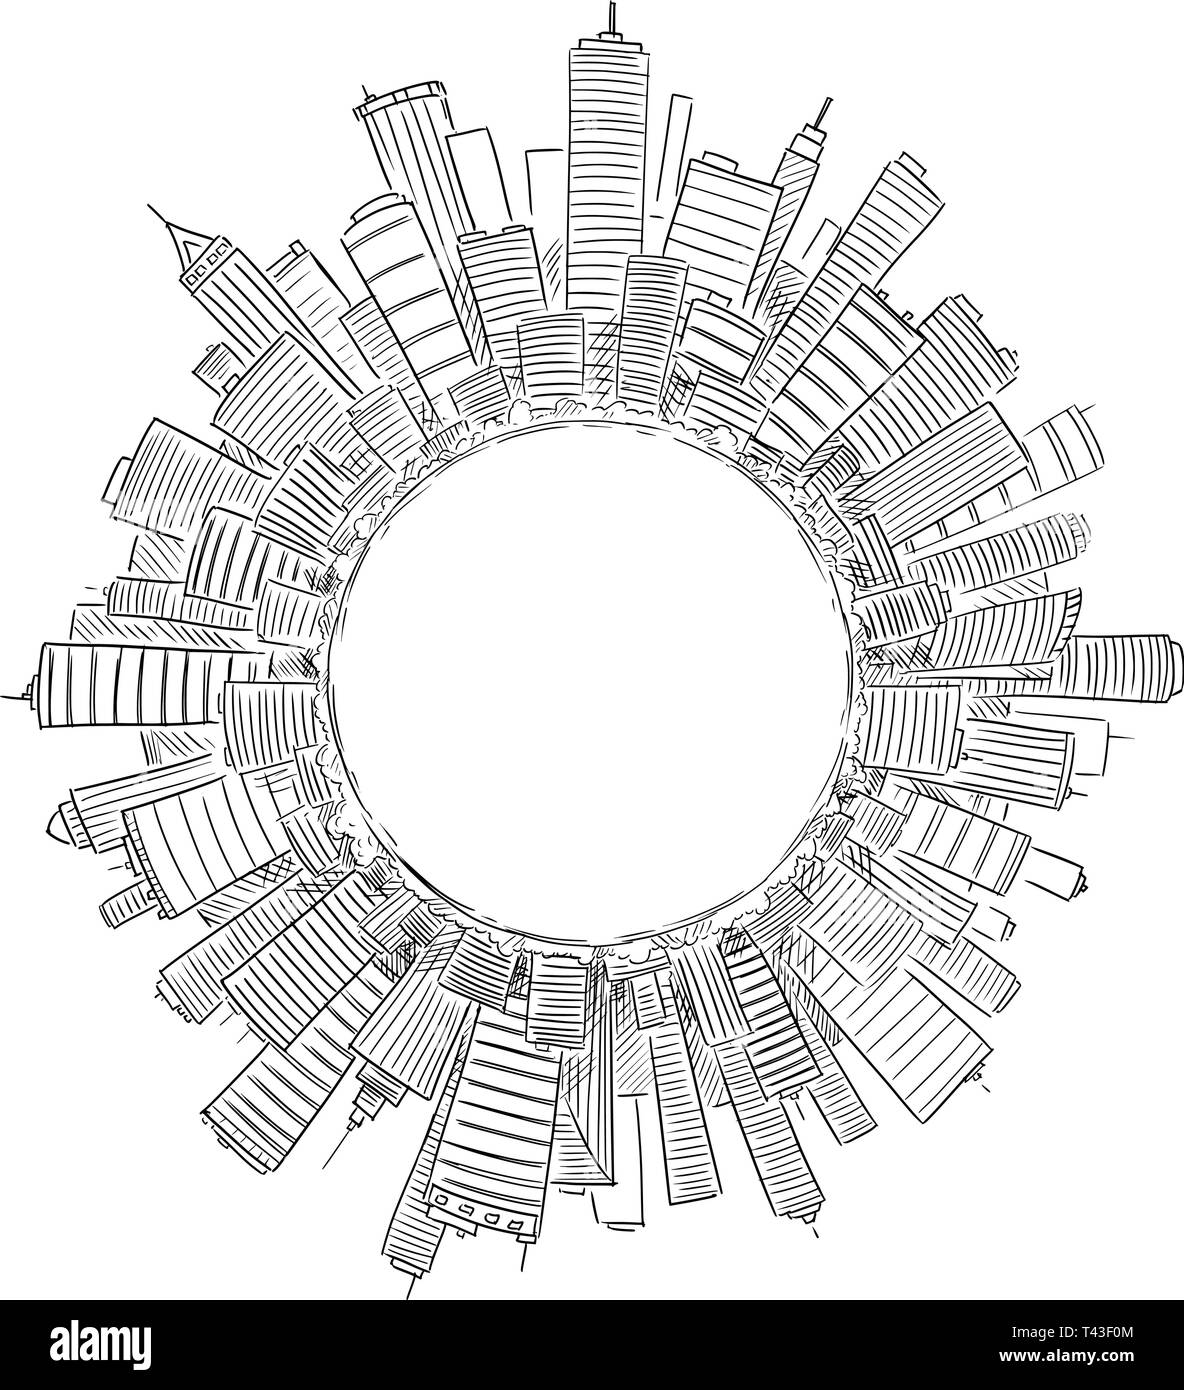 Vector drawing of high rise modern buildings covering globe or circle as representation of global civilization or business. Concept of financial sector and global economics. - Stock Image